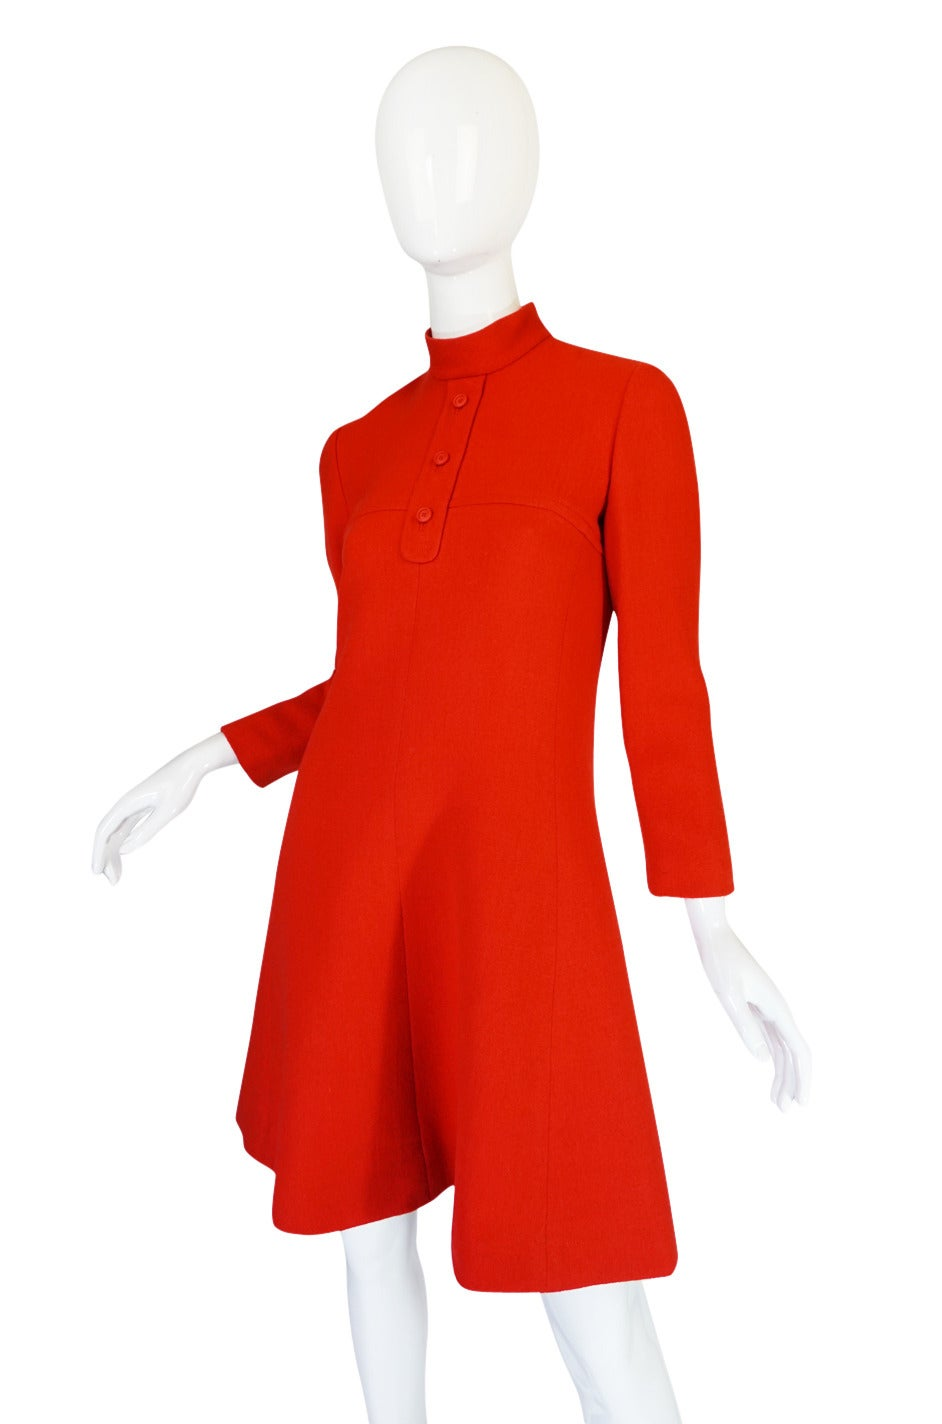 1960s Miss Dior Chic Bright Red Mod Dress In Excellent Condition For Sale In Toronto, CA